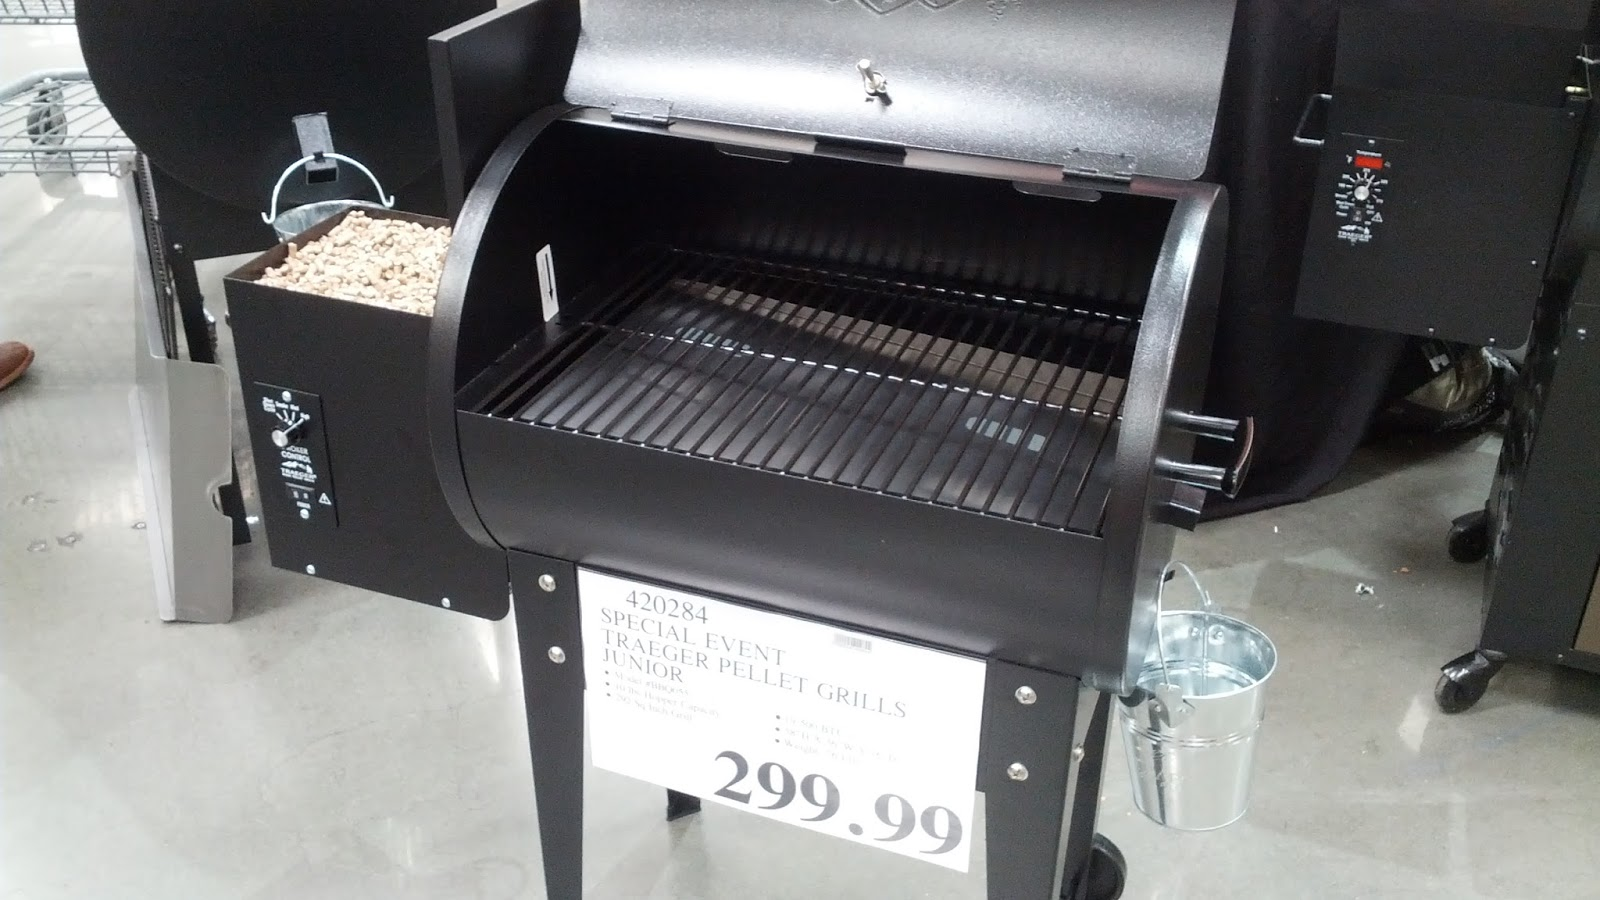 Traeger Pellet Grill Junior Model No Bbq055 At Costco